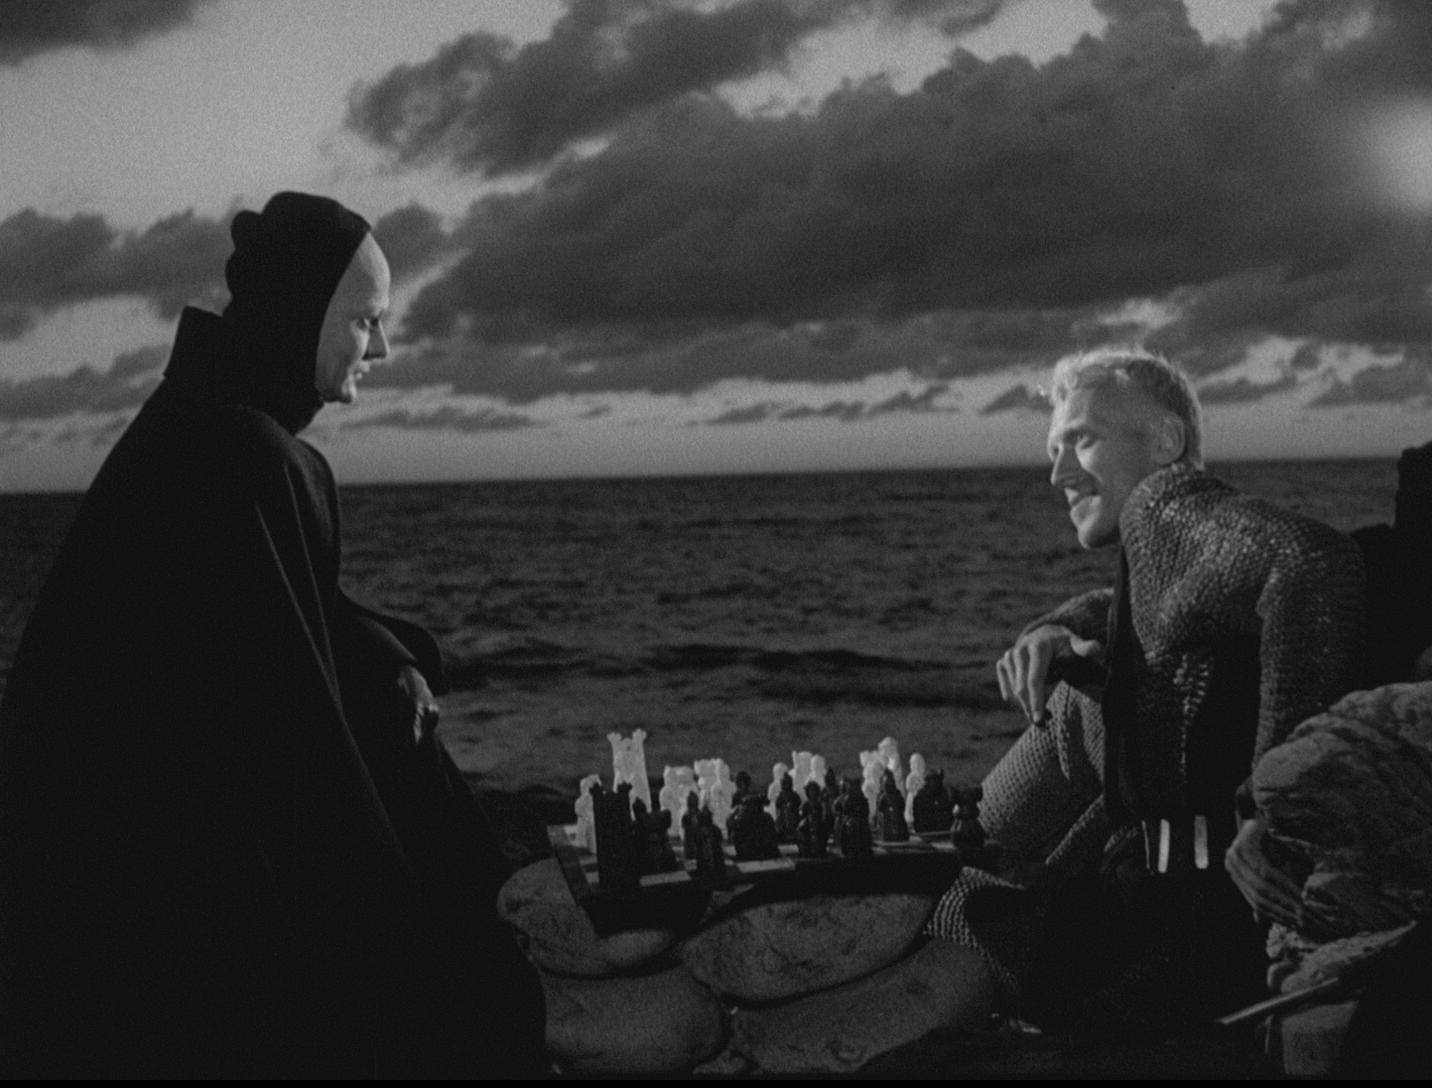 https://i1.wp.com/theyoungfolks.com/wp-content/uploads/2015/12/ingmar_bergman_seventh_seal_2a_4.jpg